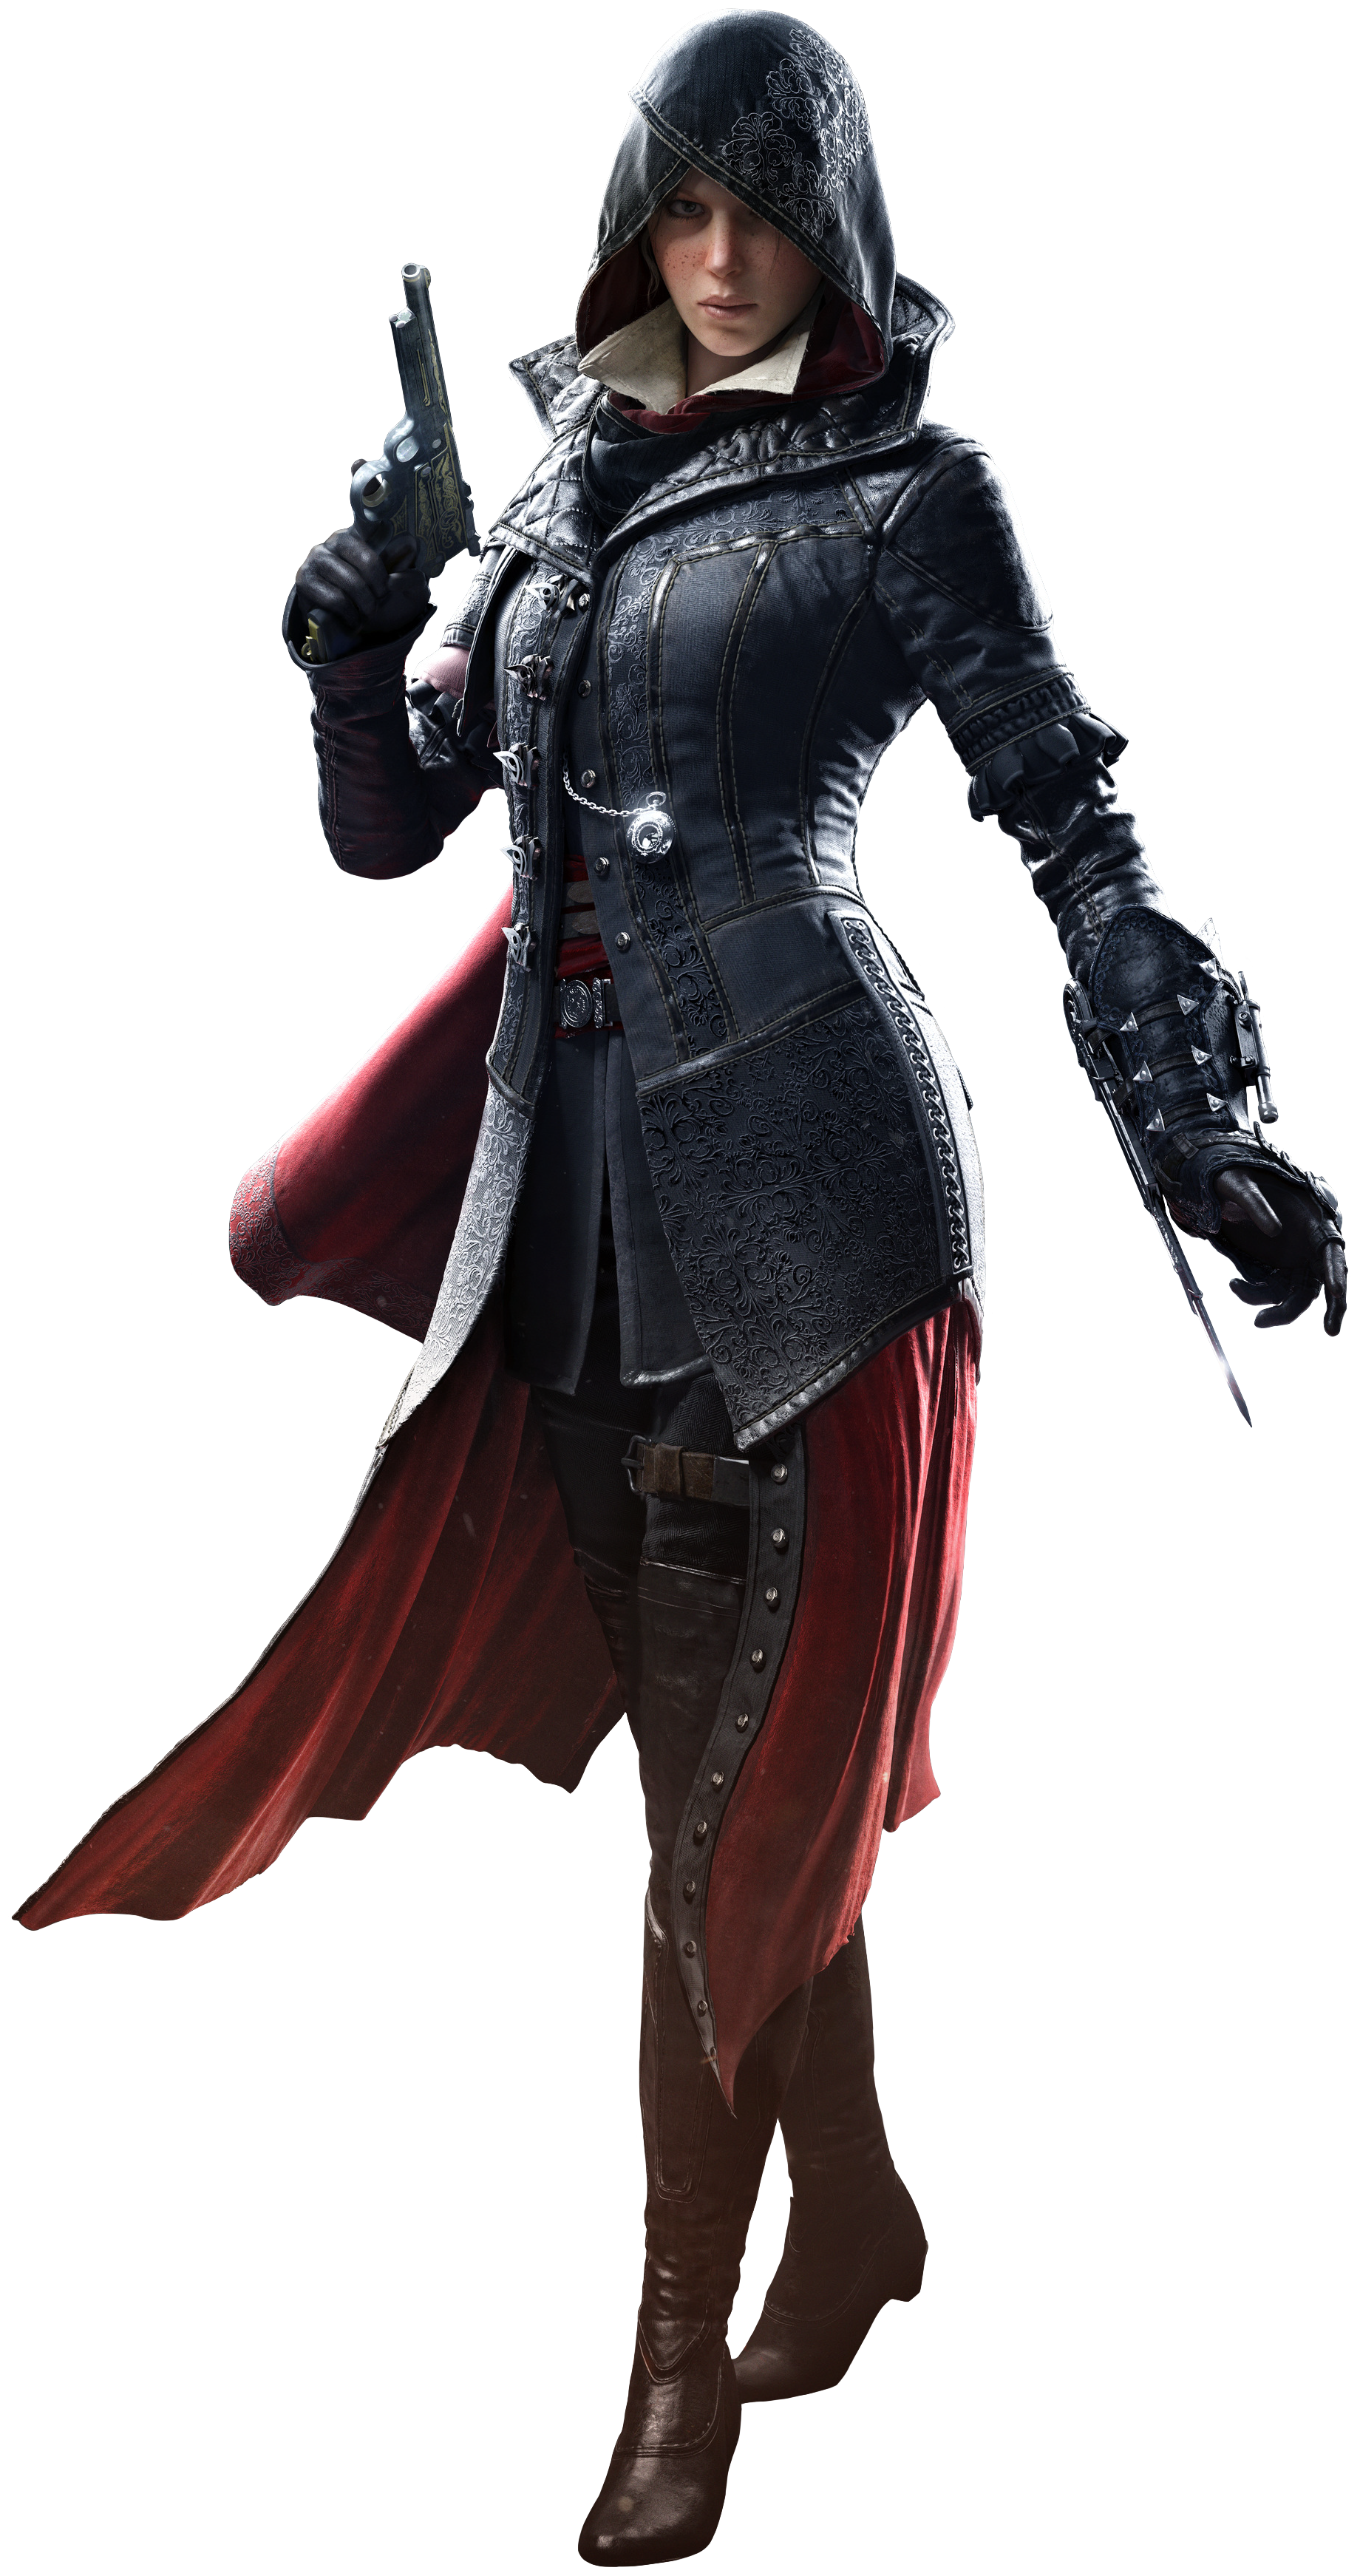 Evie Frye | Assassin's Creed Wiki | FANDOM powered by Wikia